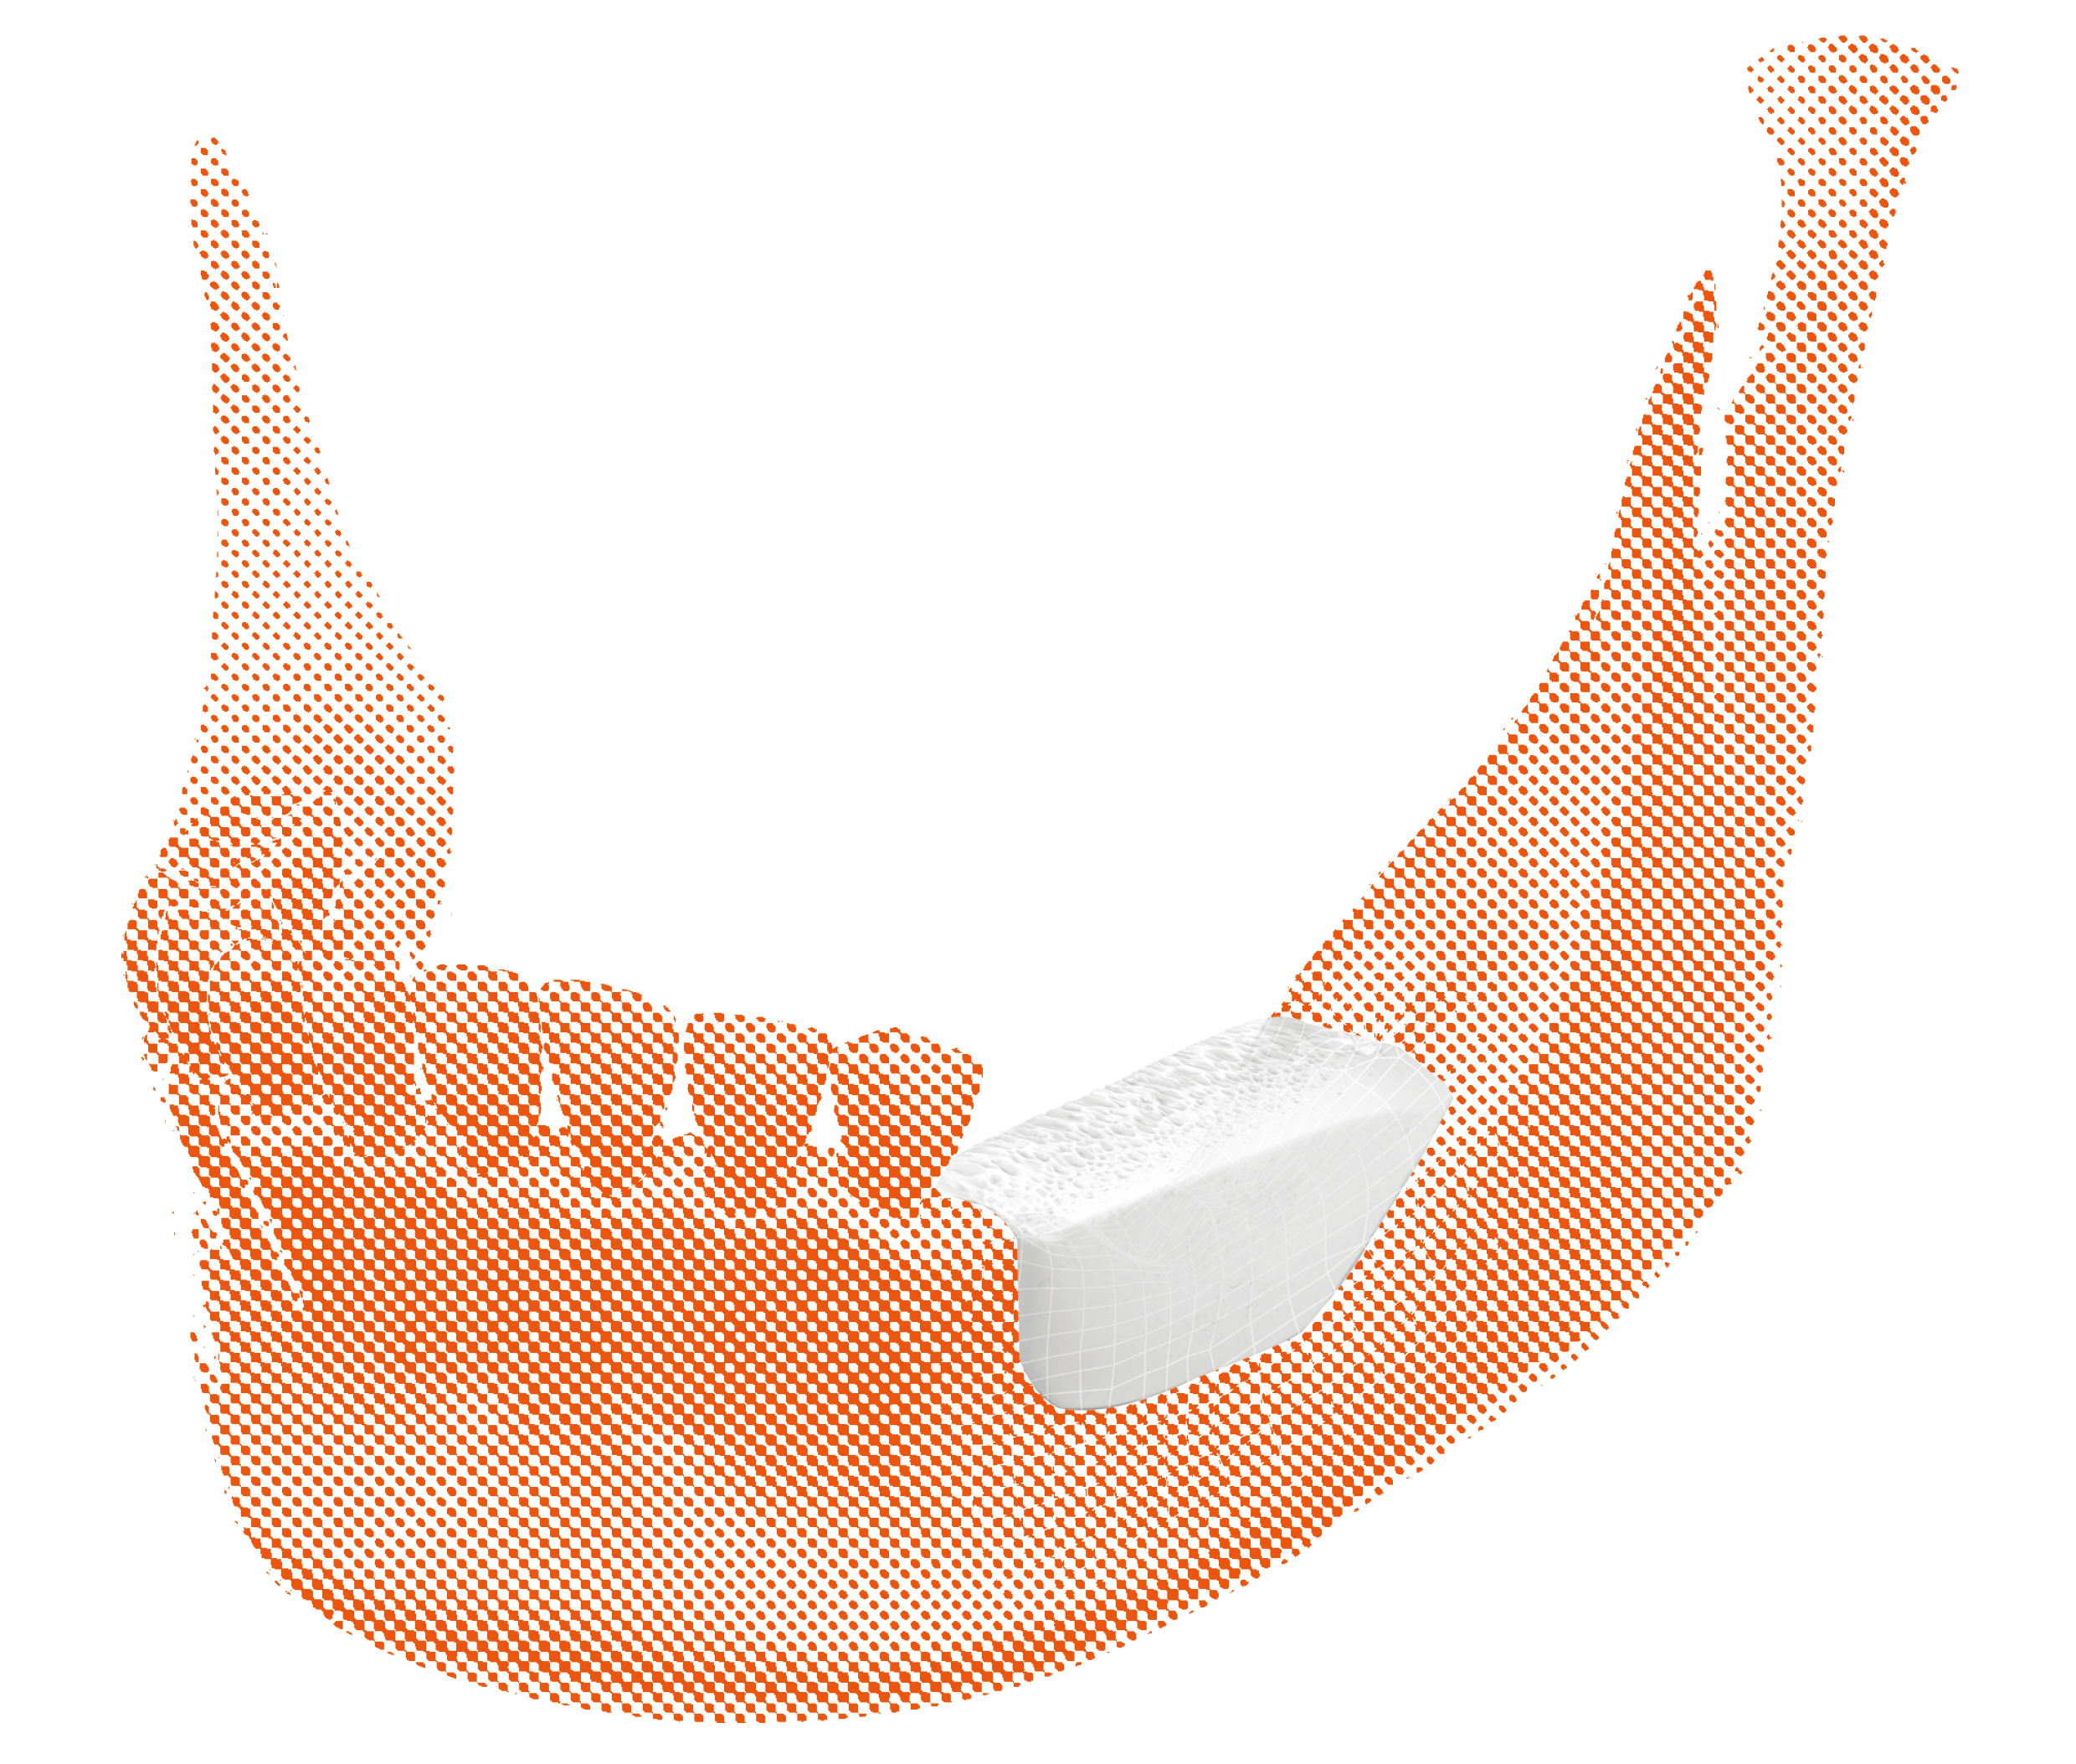 BIOBank customized graft mounted on the posterior sector of the mandible